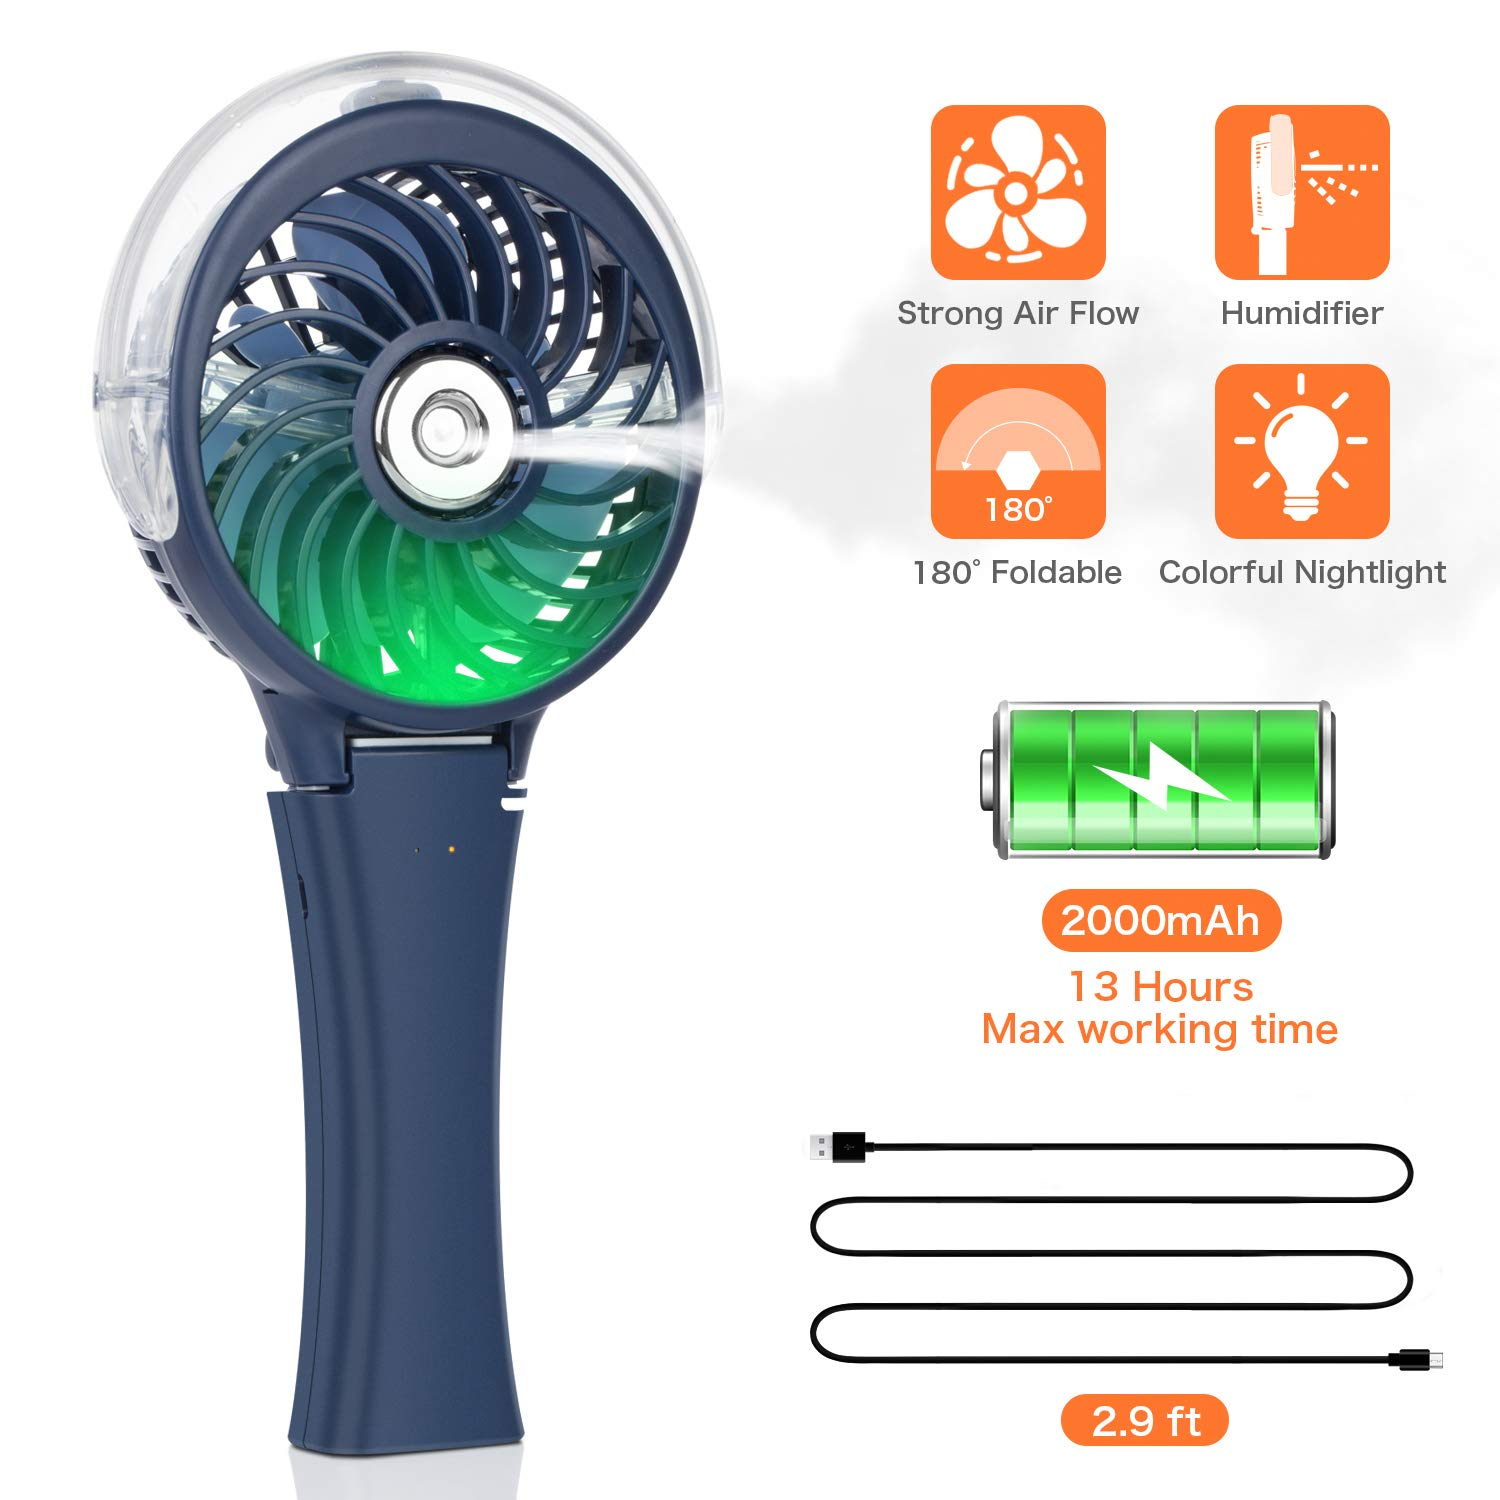 Handheld Mini USB Bowling Fan Portable Small Personal Fan with Large Capacity Rechargeable Battery for Home Office Travel and Festival Gift